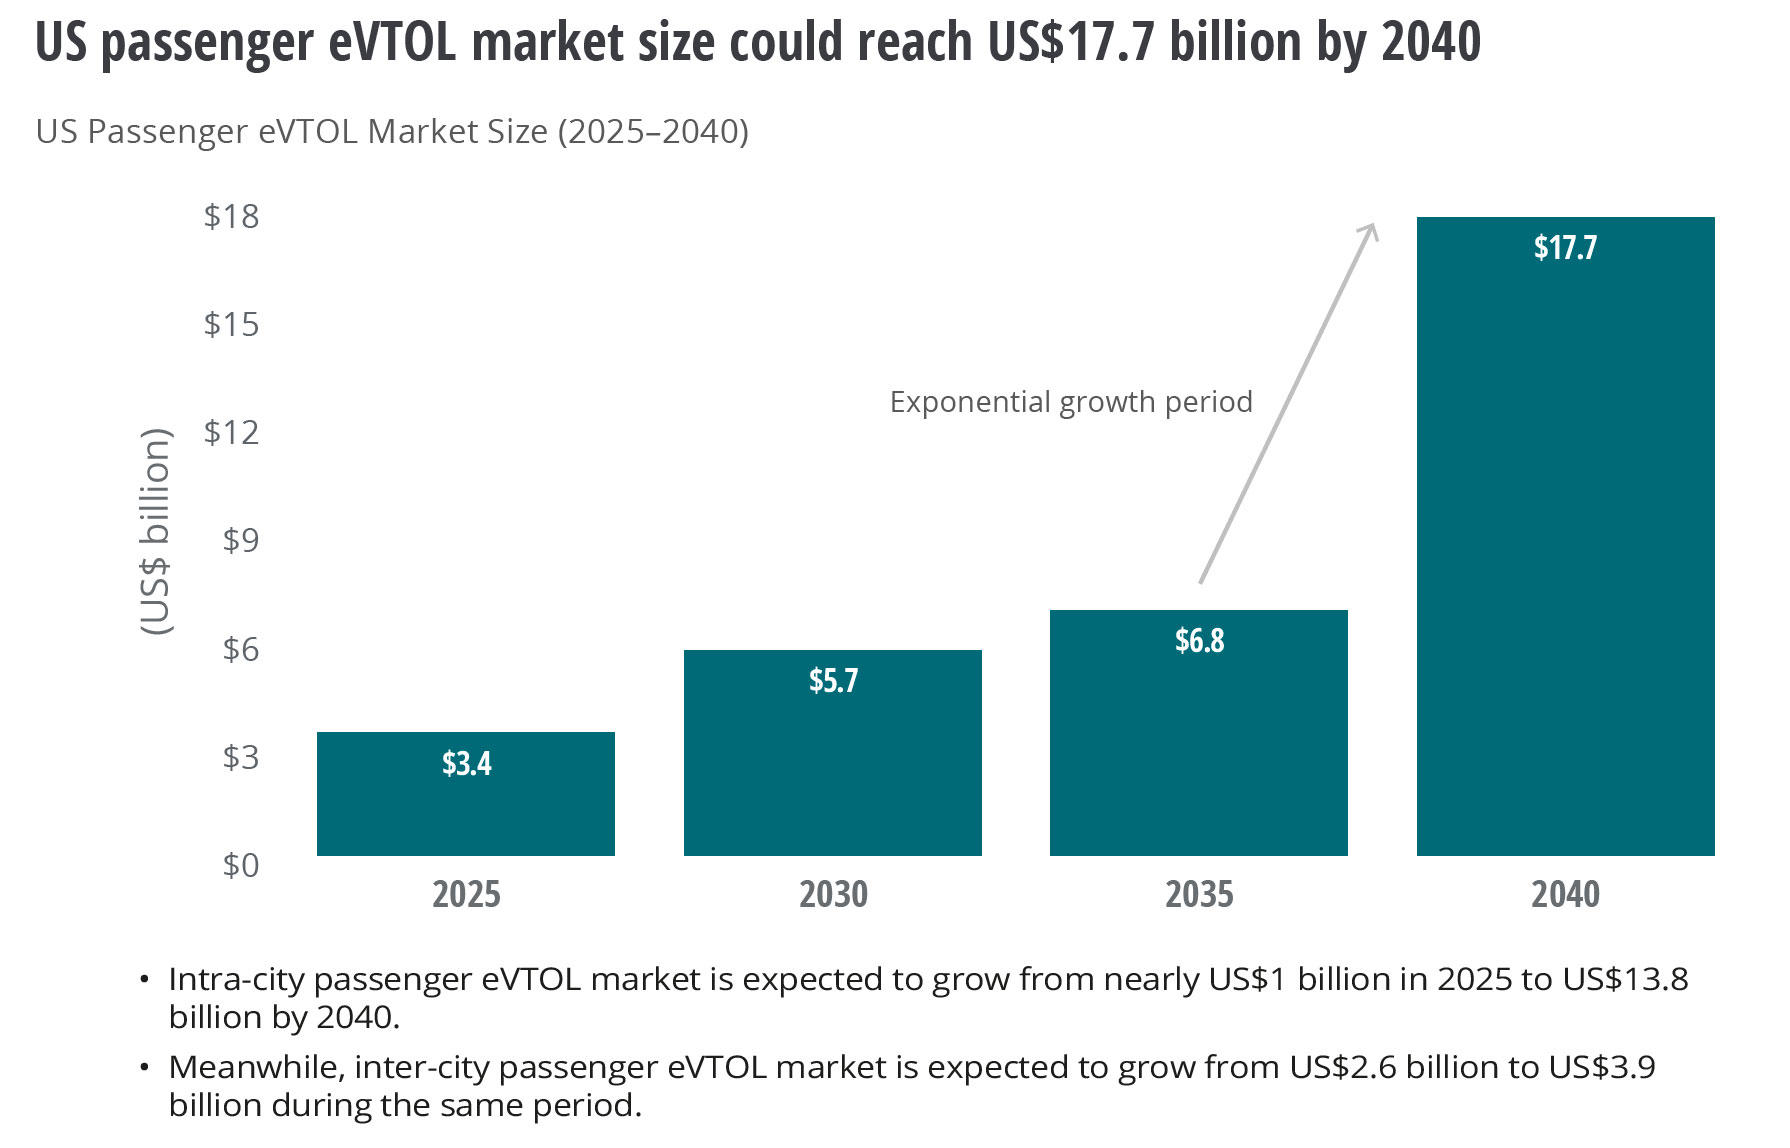 Sales of electric flying cars that take off and land vertically should surge from 2035 to 2040, Deloitte forecasts.